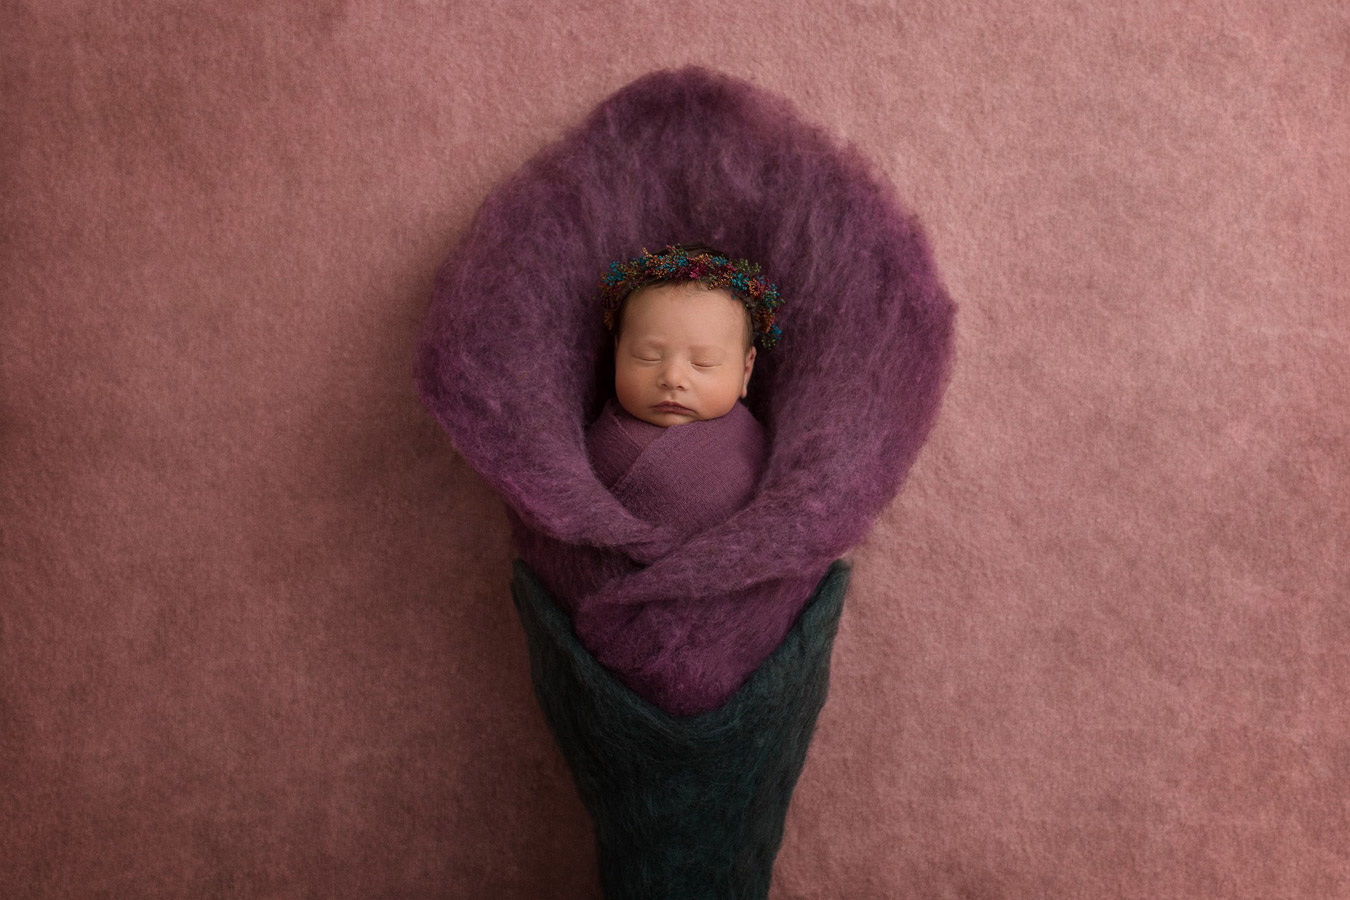 Untitled, © A. Tetera, UK, Newborns Photo Contest